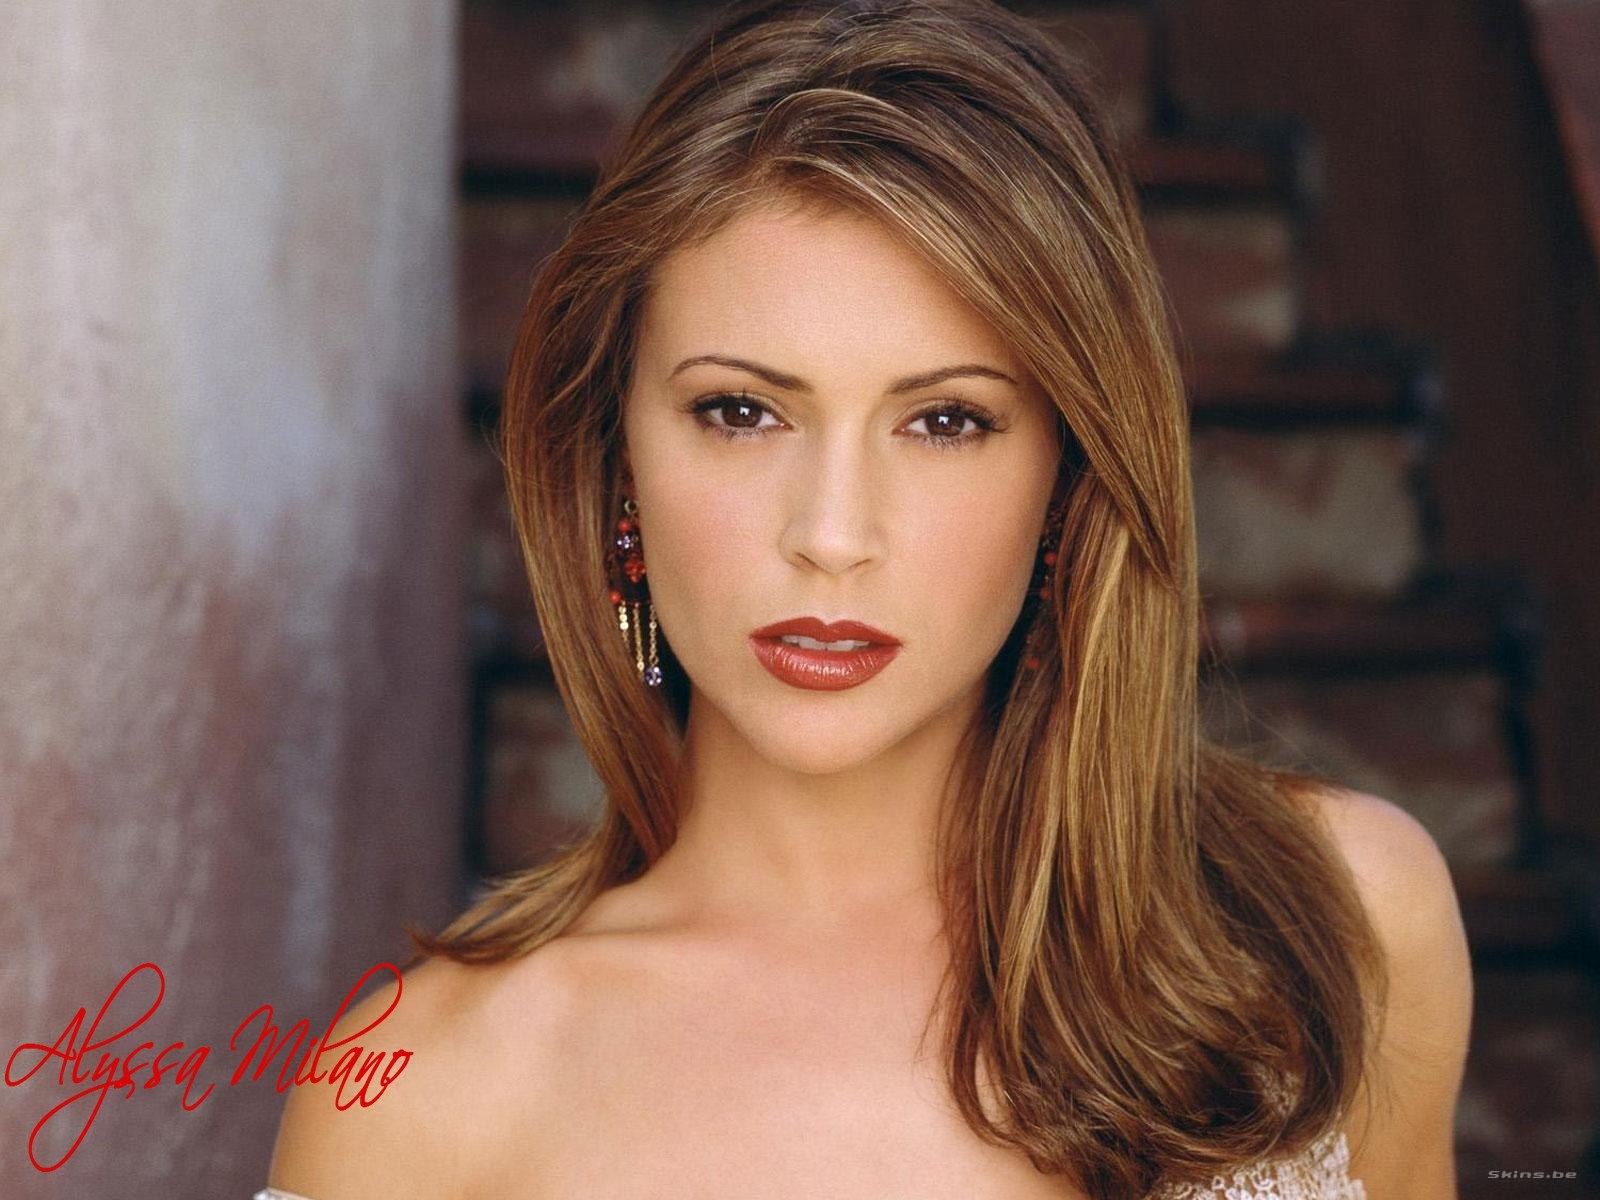 Maxim Alyssa Milano HD Desktop Wallpaper HD Desktop Wallpaper 1600x1200